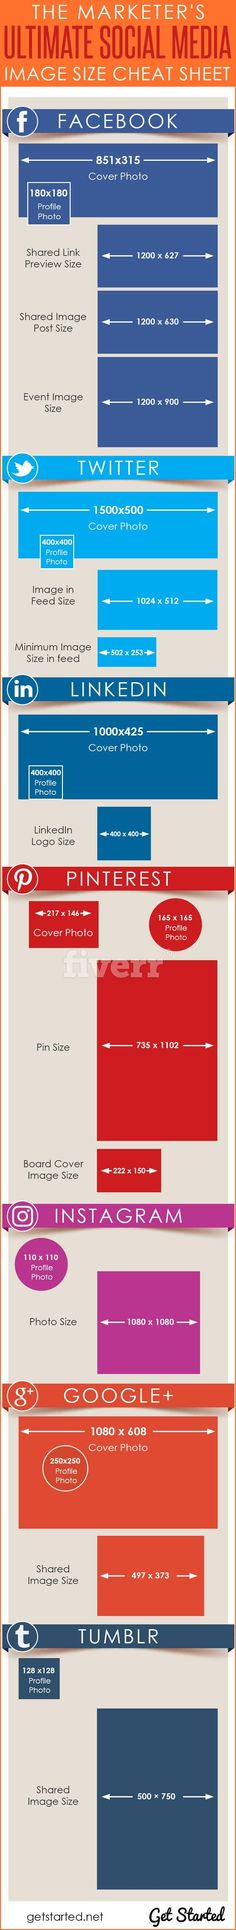 The Marketer's Ultimate Social Media Image Sizes Cheat Sheet for 2017 - Get the Embed Code for your website here now! - Tap the link to shop on our official online store! You can also join our affiliate and/or rewards programs for FREE! Social Media Sizes, Social Media Cheat Sheet, Power Of Social Media, Social Media Trends, Social Media Images, Social Media Marketing Business, Facebook Marketing, Online Marketing, Digital Marketing